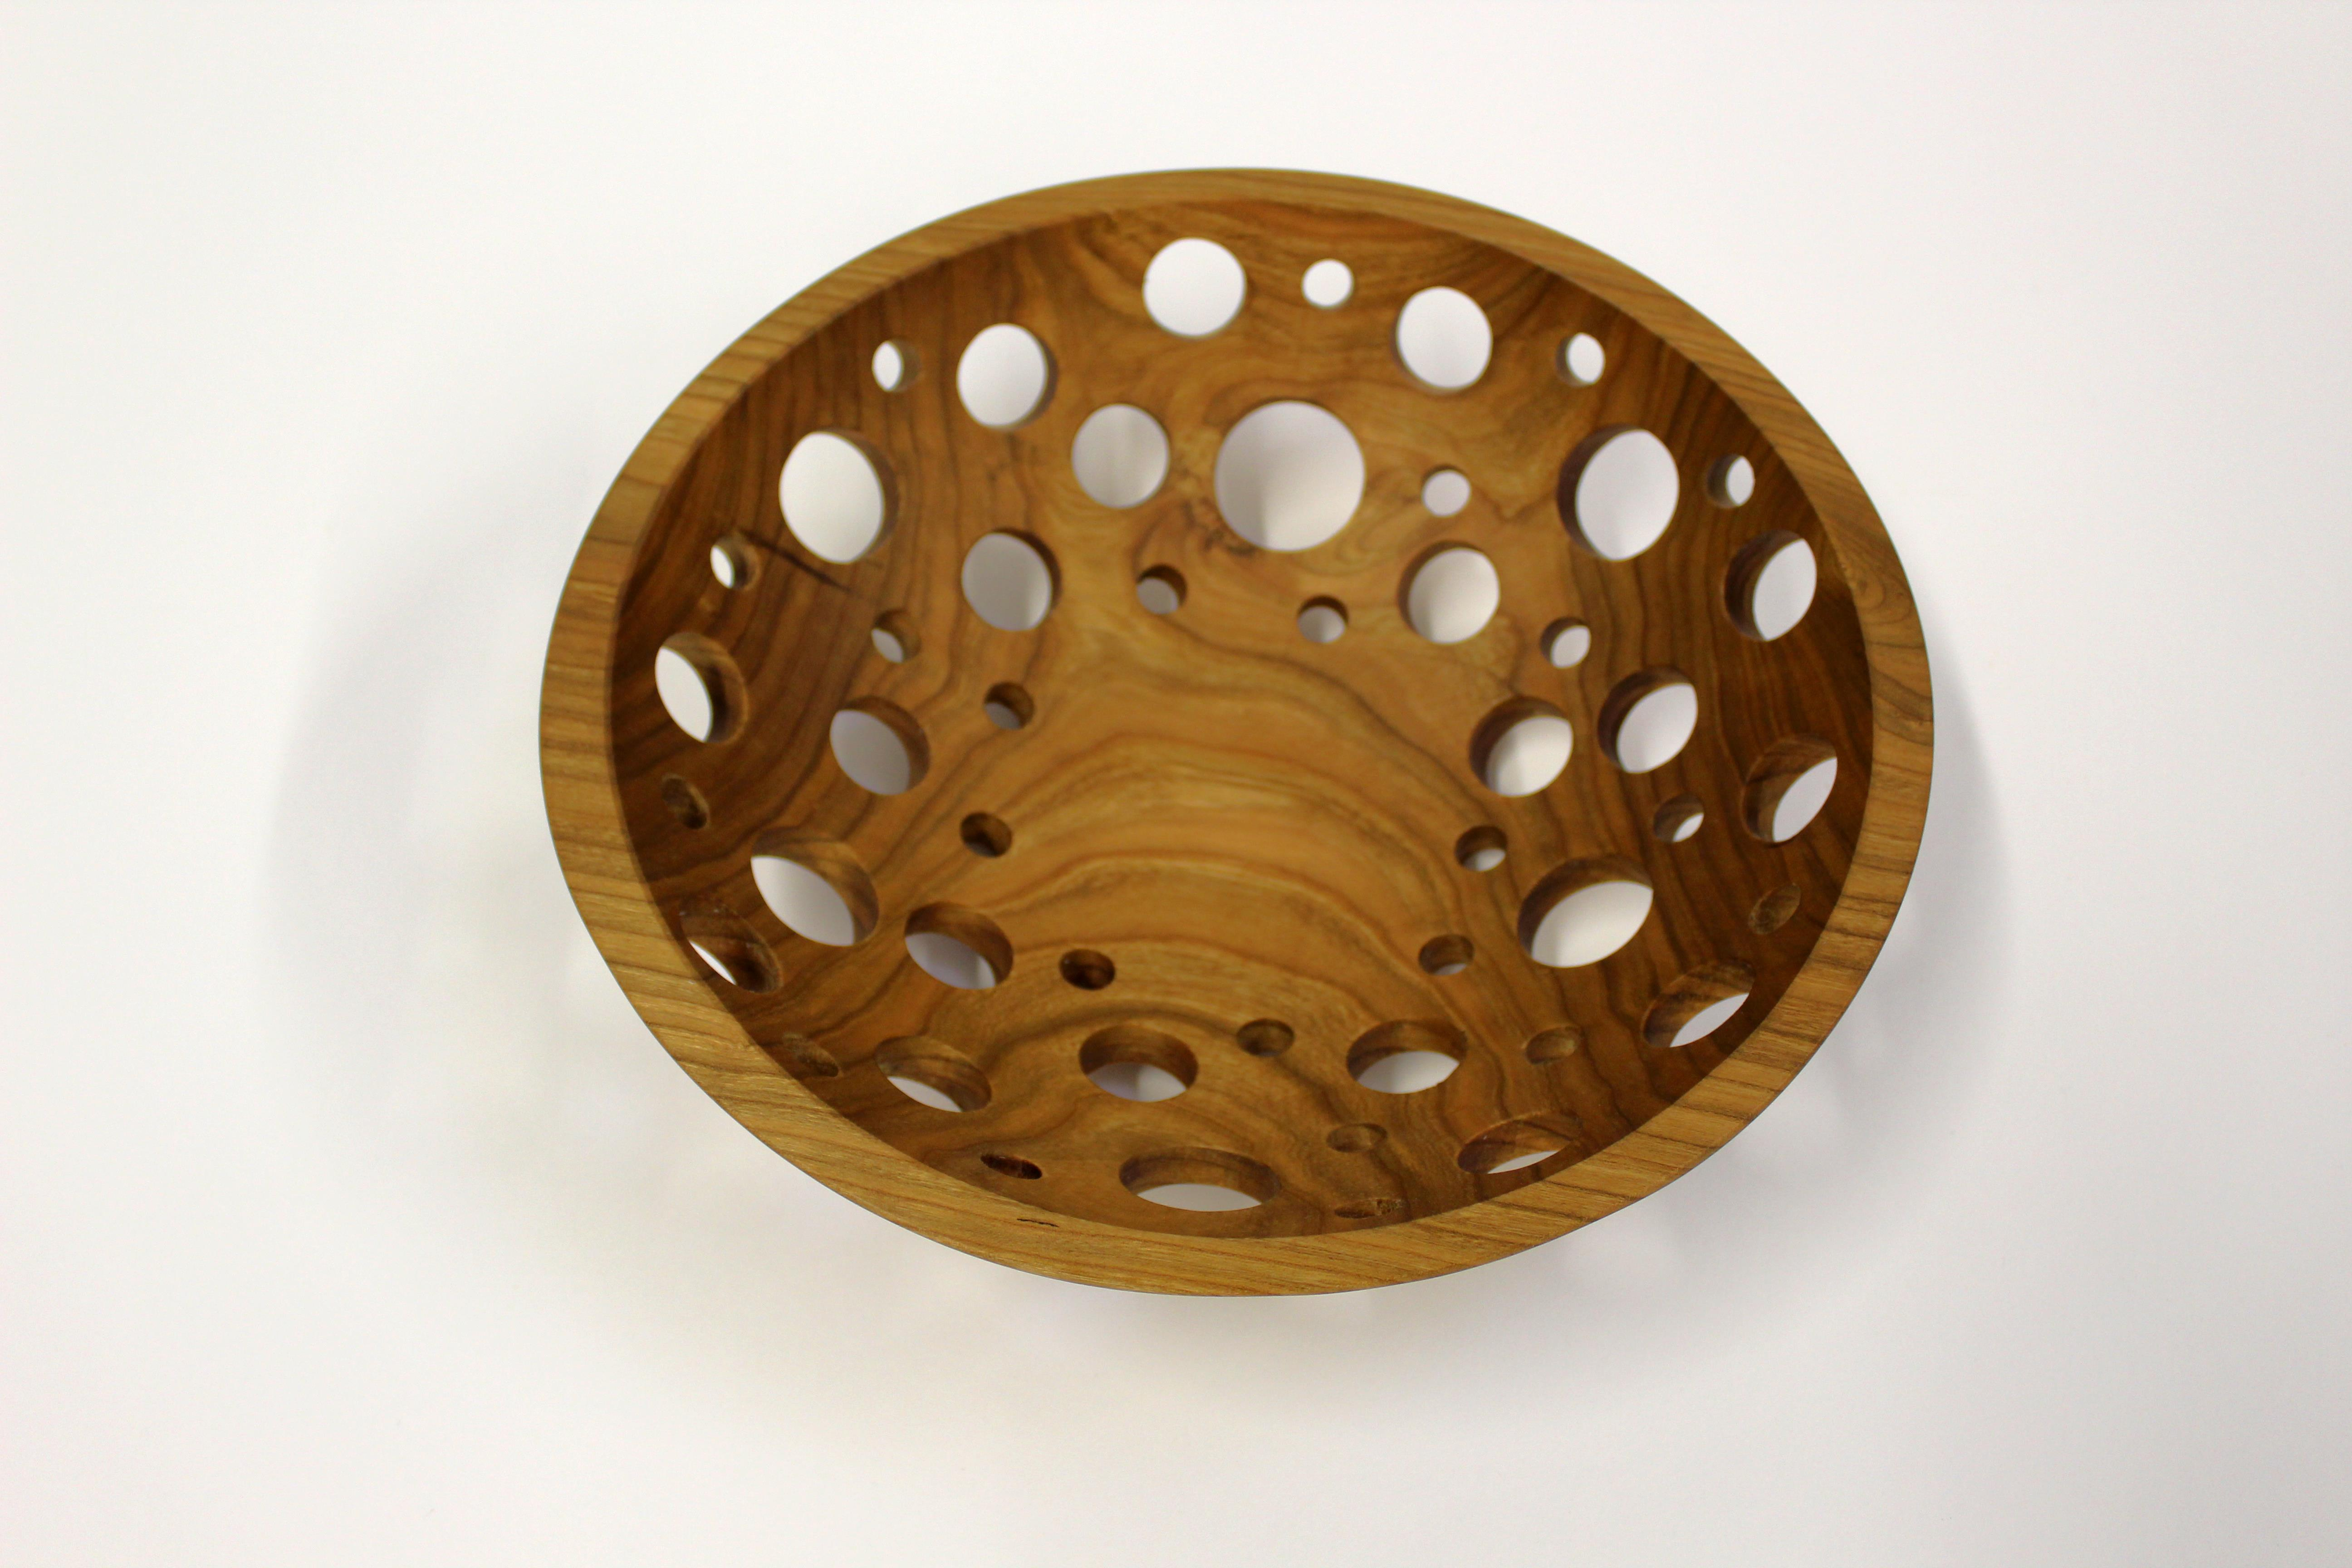 12 inch Solid Cherry Fruit Bowl - Featured in 2015 May/June Edition of Midwest Living Magazine C112FB